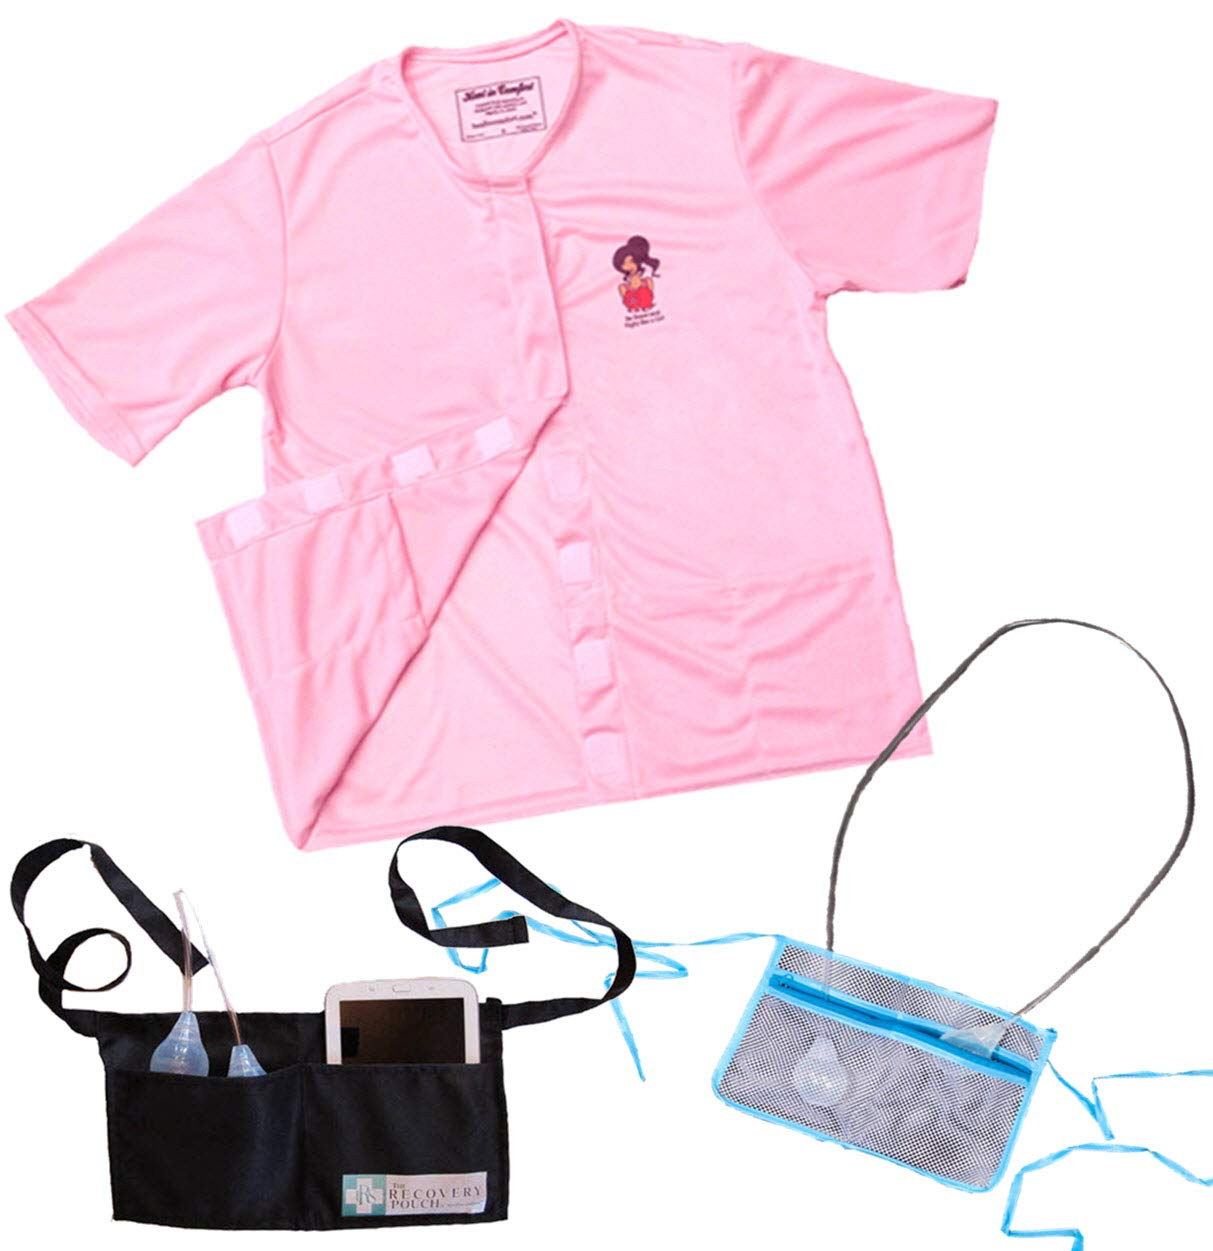 Heal in Comfort Mastectomy Shirt with Drain Pockets & Post Surgical Drain Holder- Size Large Pink